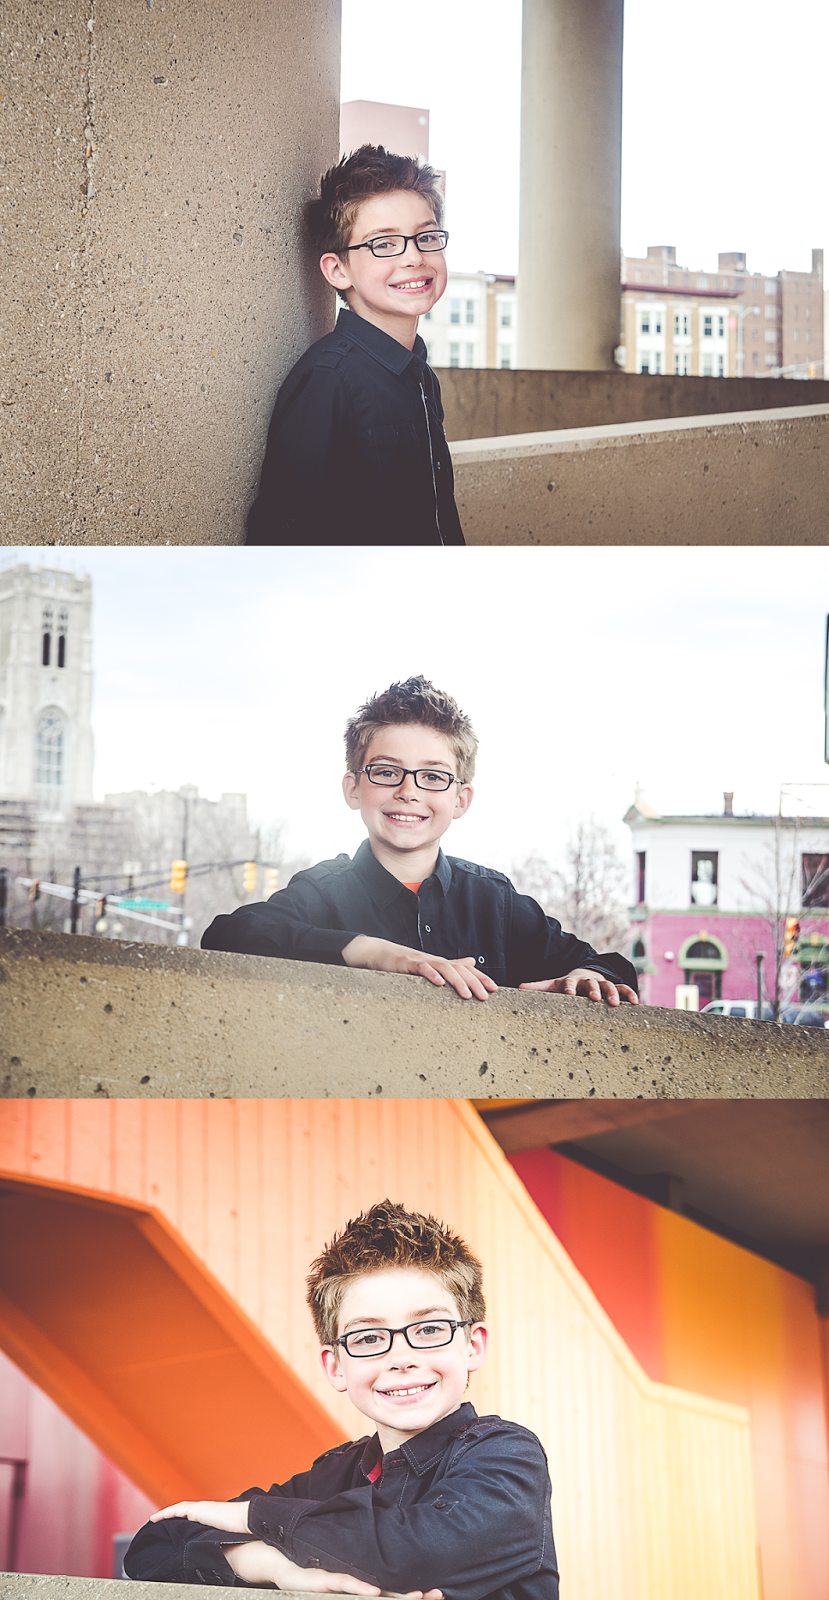 awesome indianapolis photographer photographs a kid in downtown indianapolis